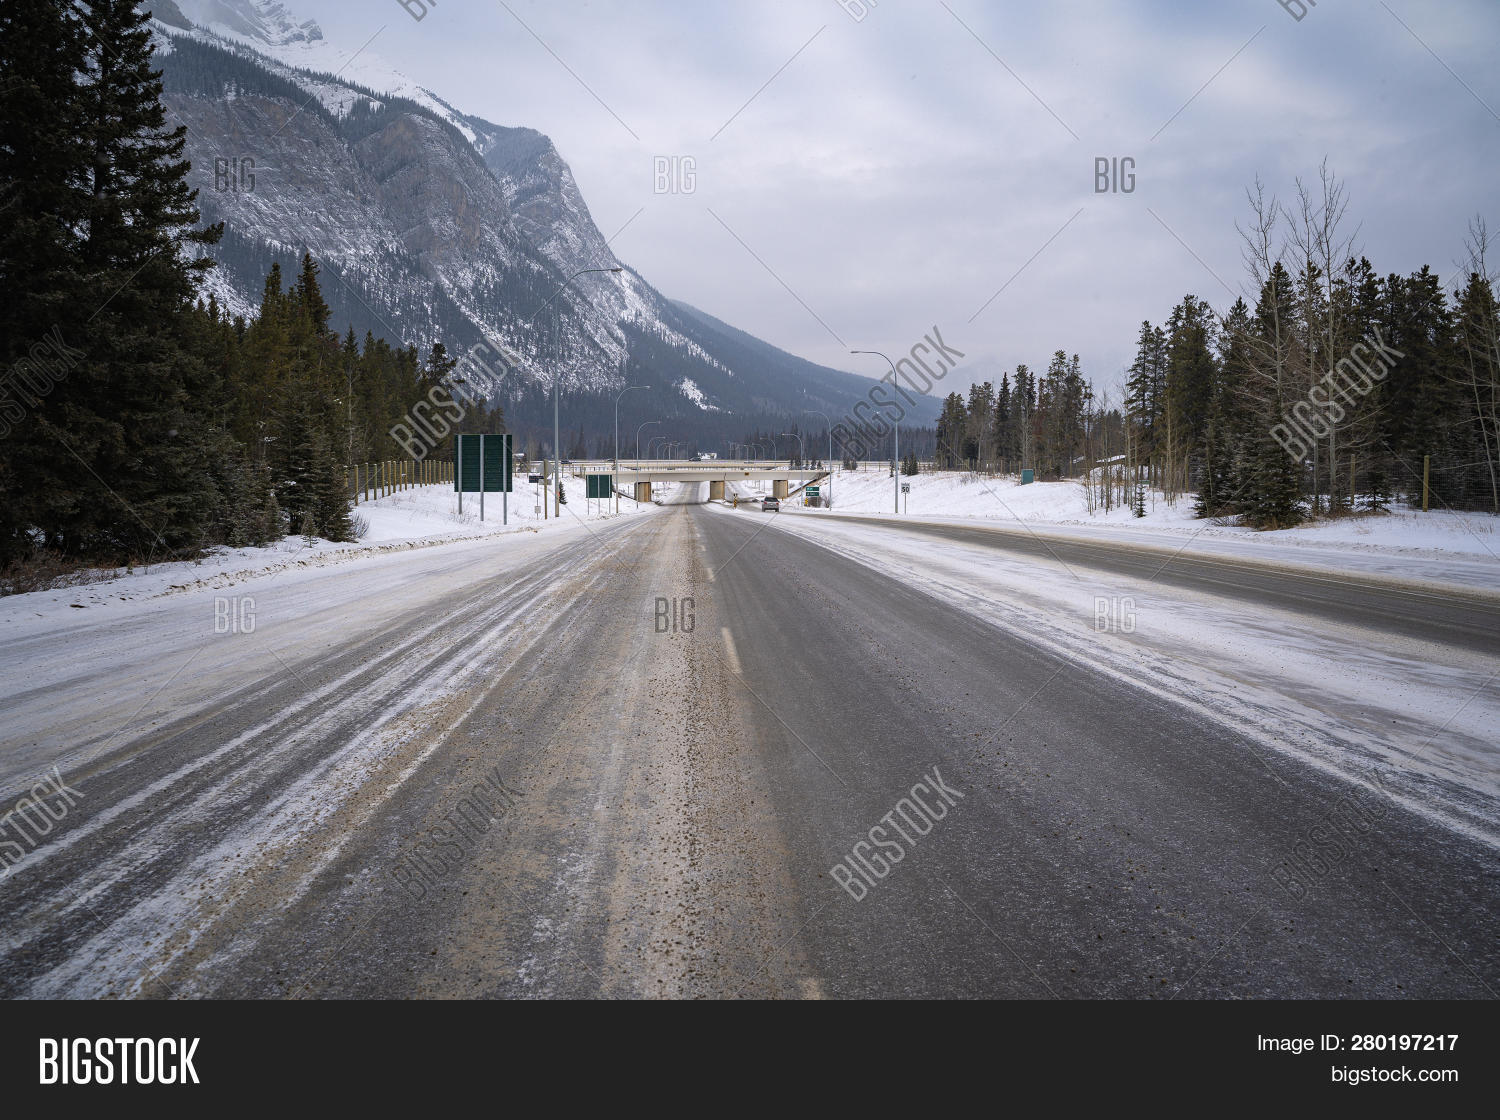 View Icy Snowy Road Image & Photo (Free Trial) | Bigstock